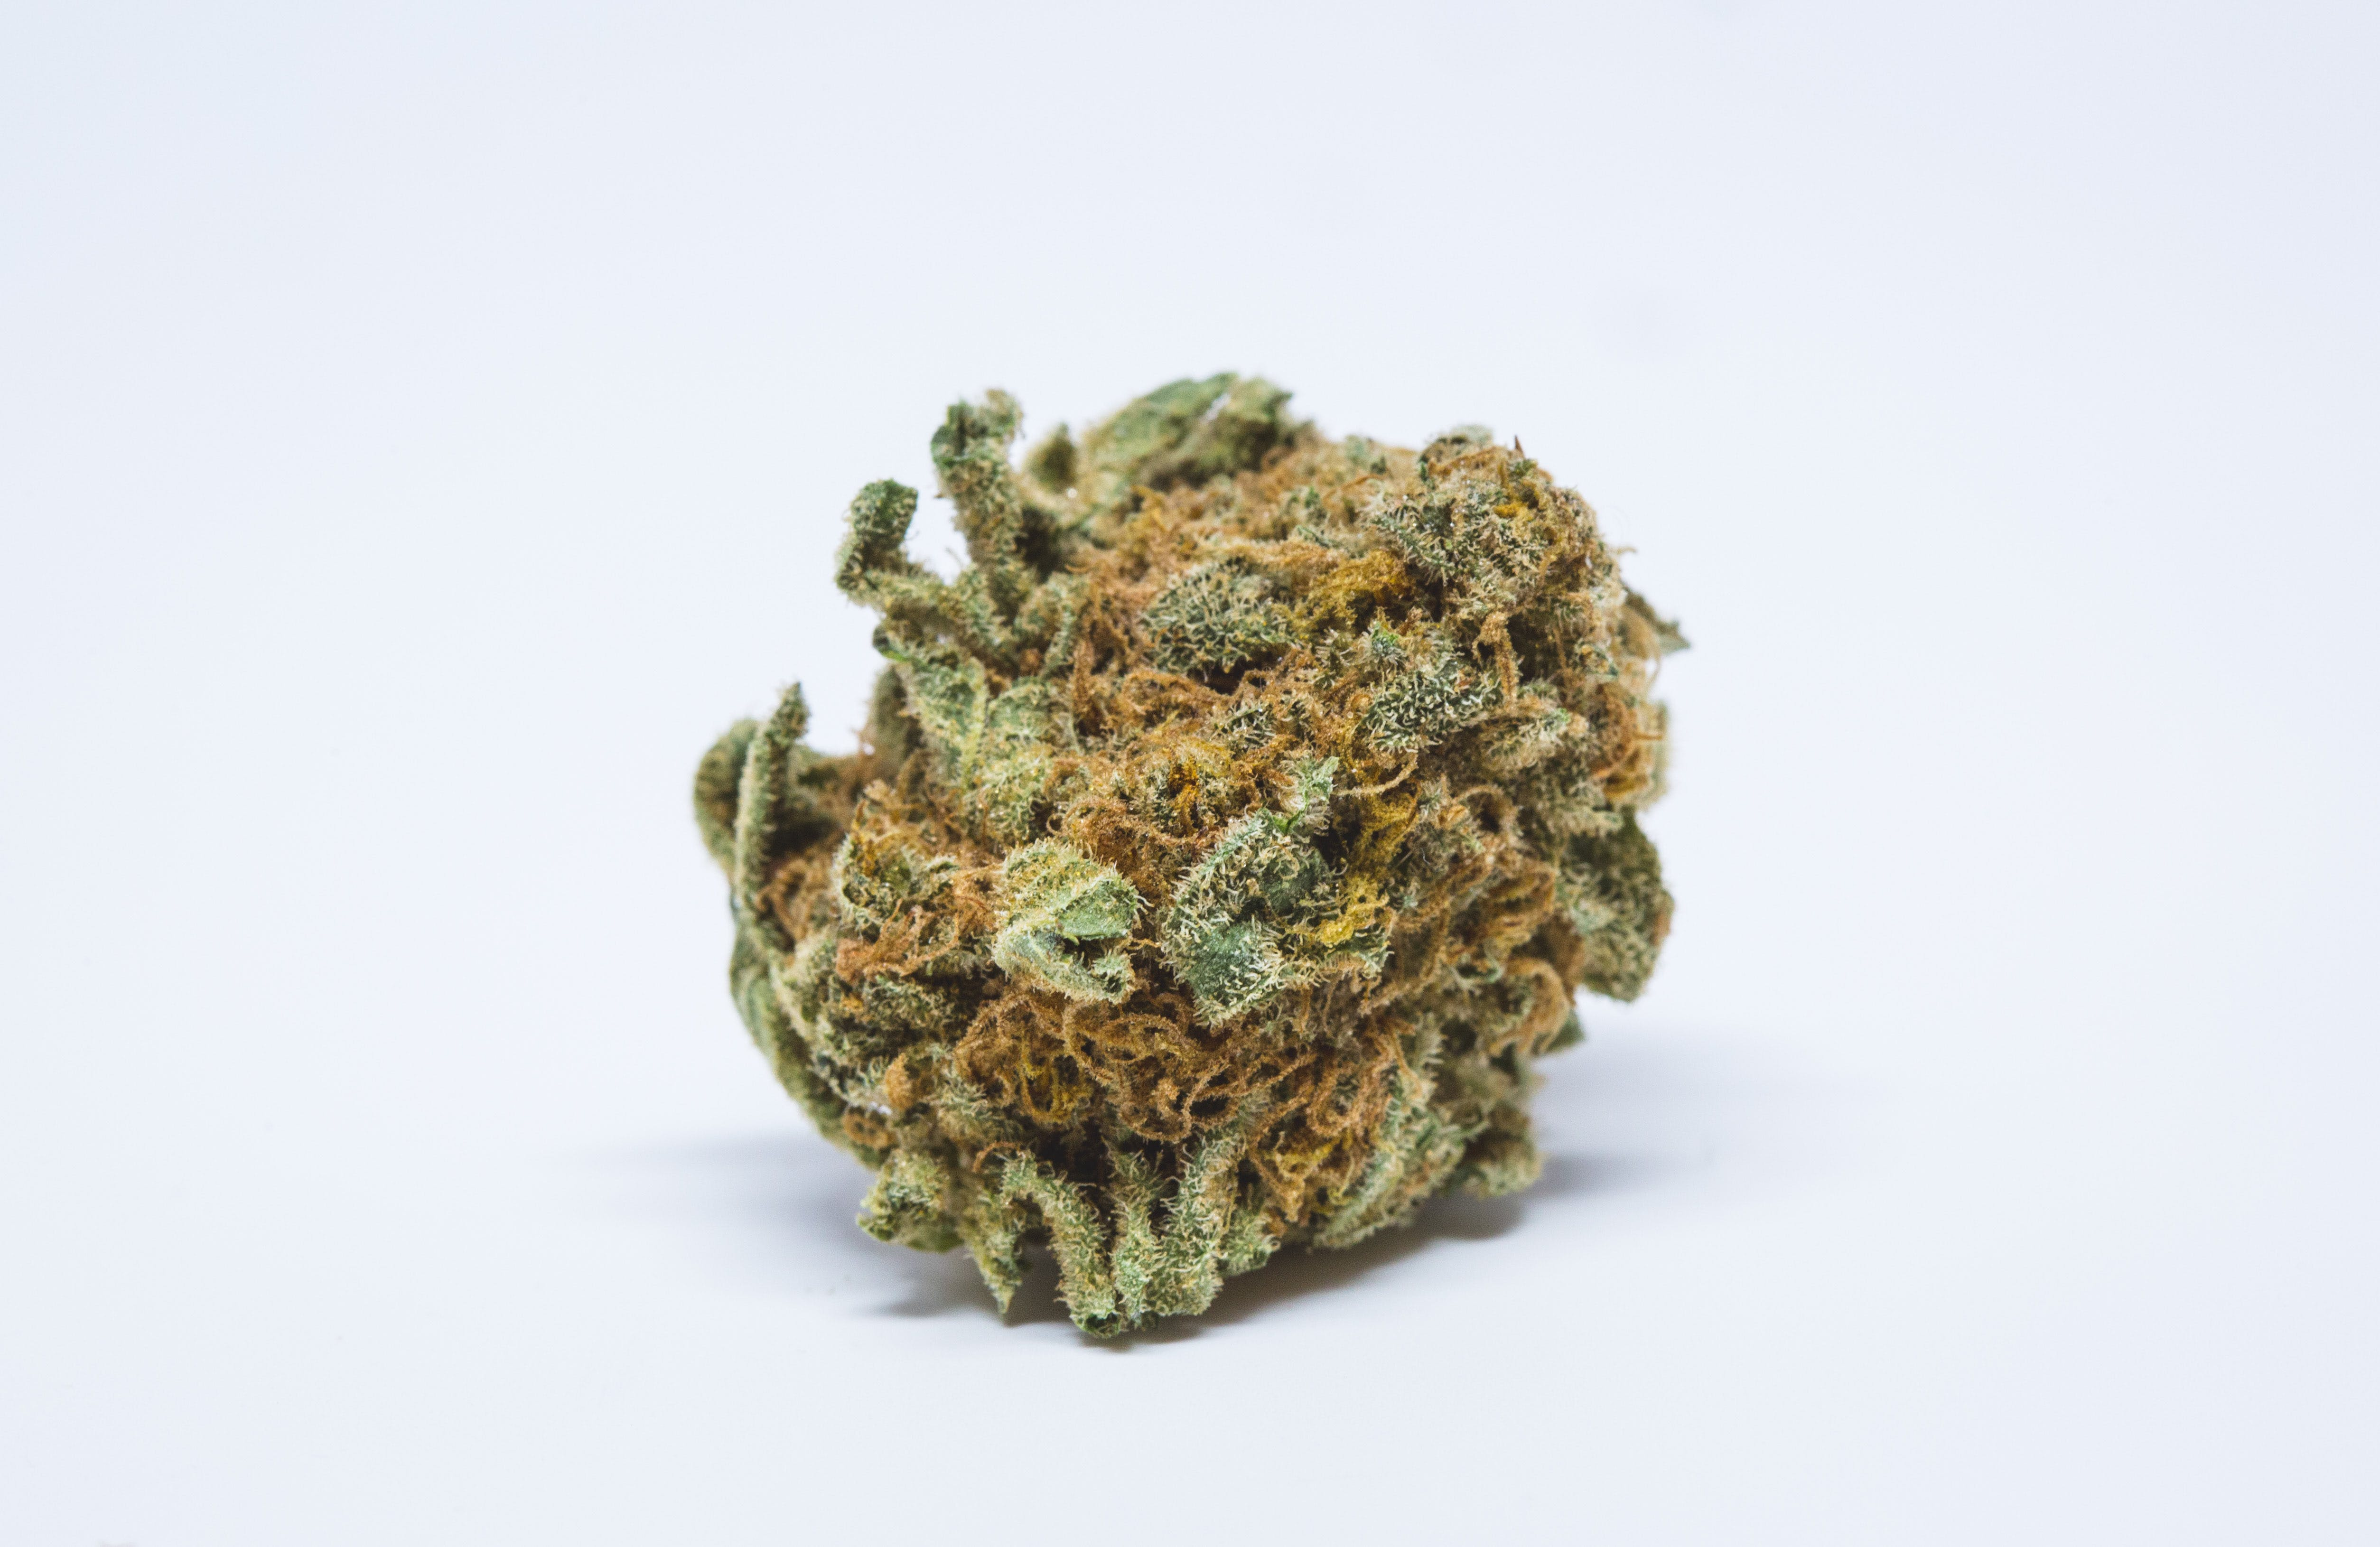 Cherry Pie 7 Ways To Smoke Weed In Your Apartment On The Sly